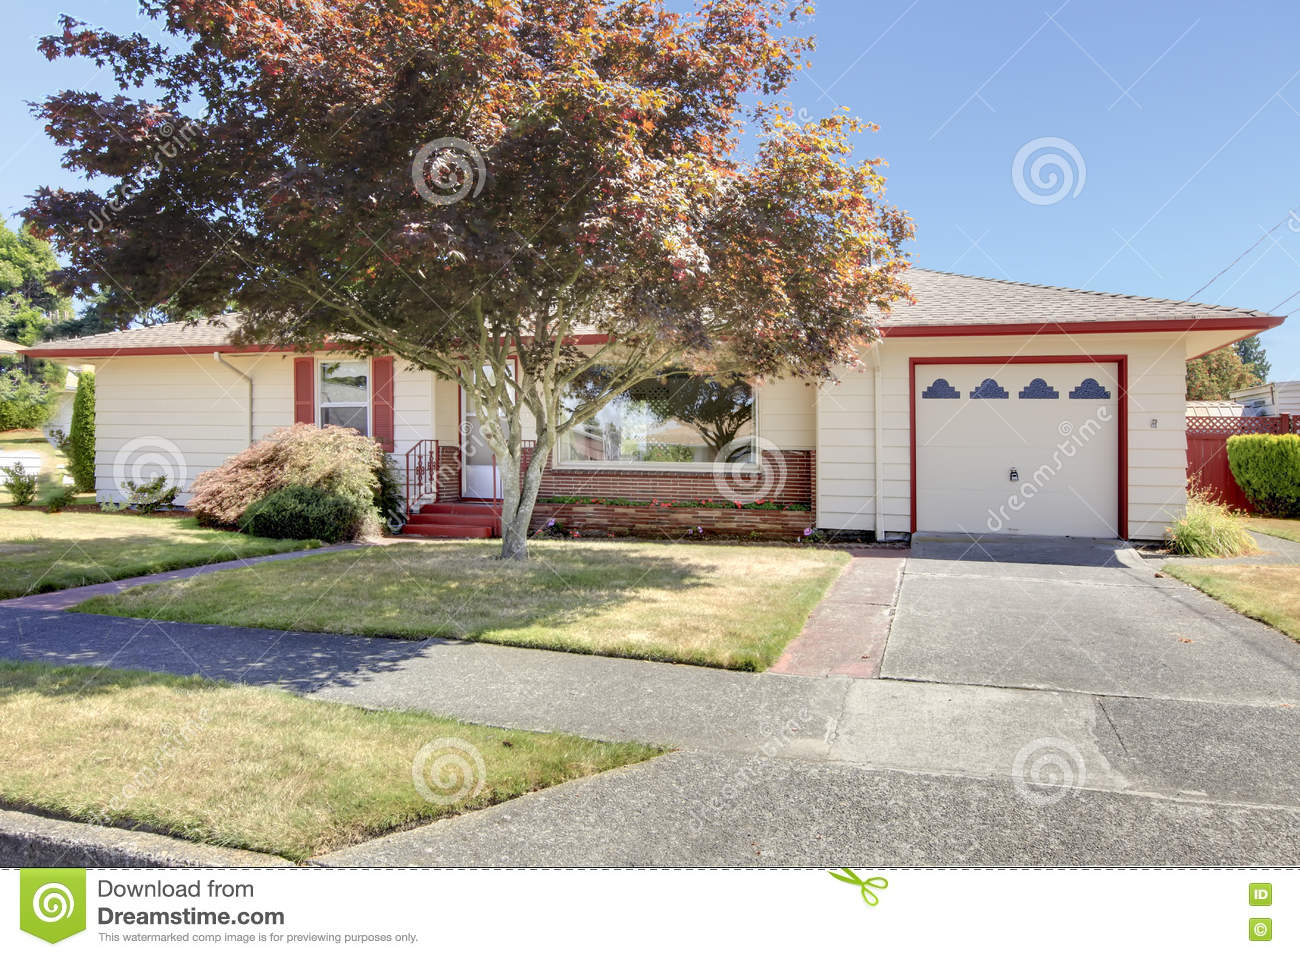 rambler exterior old simple american house stock photo image